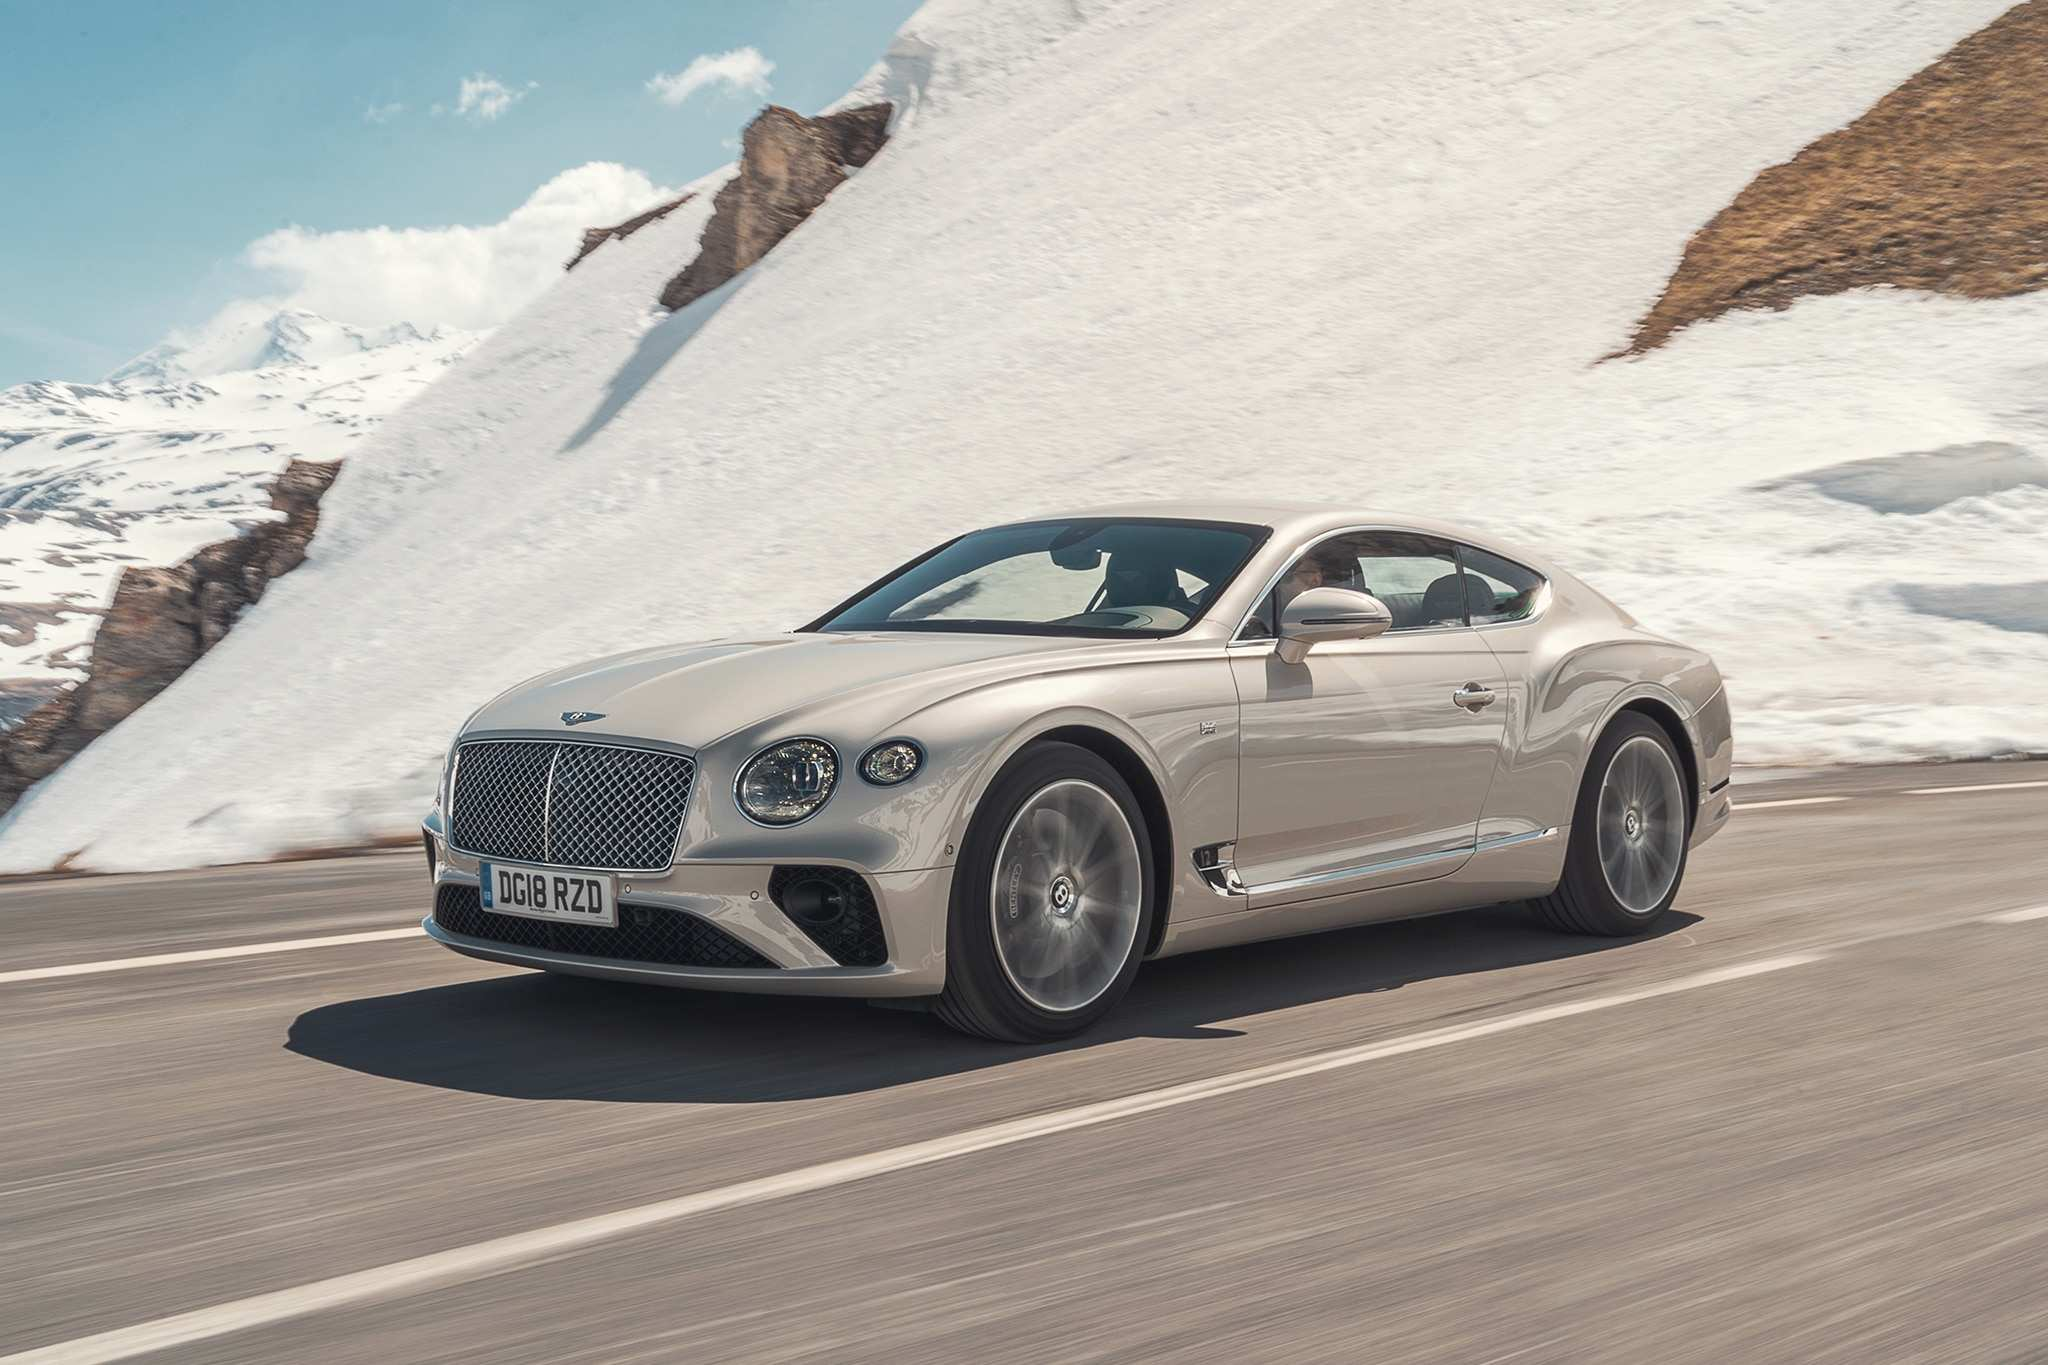 49 Best Review 2019 Bentley Continental Exterior and Interior with 2019 Bentley Continental